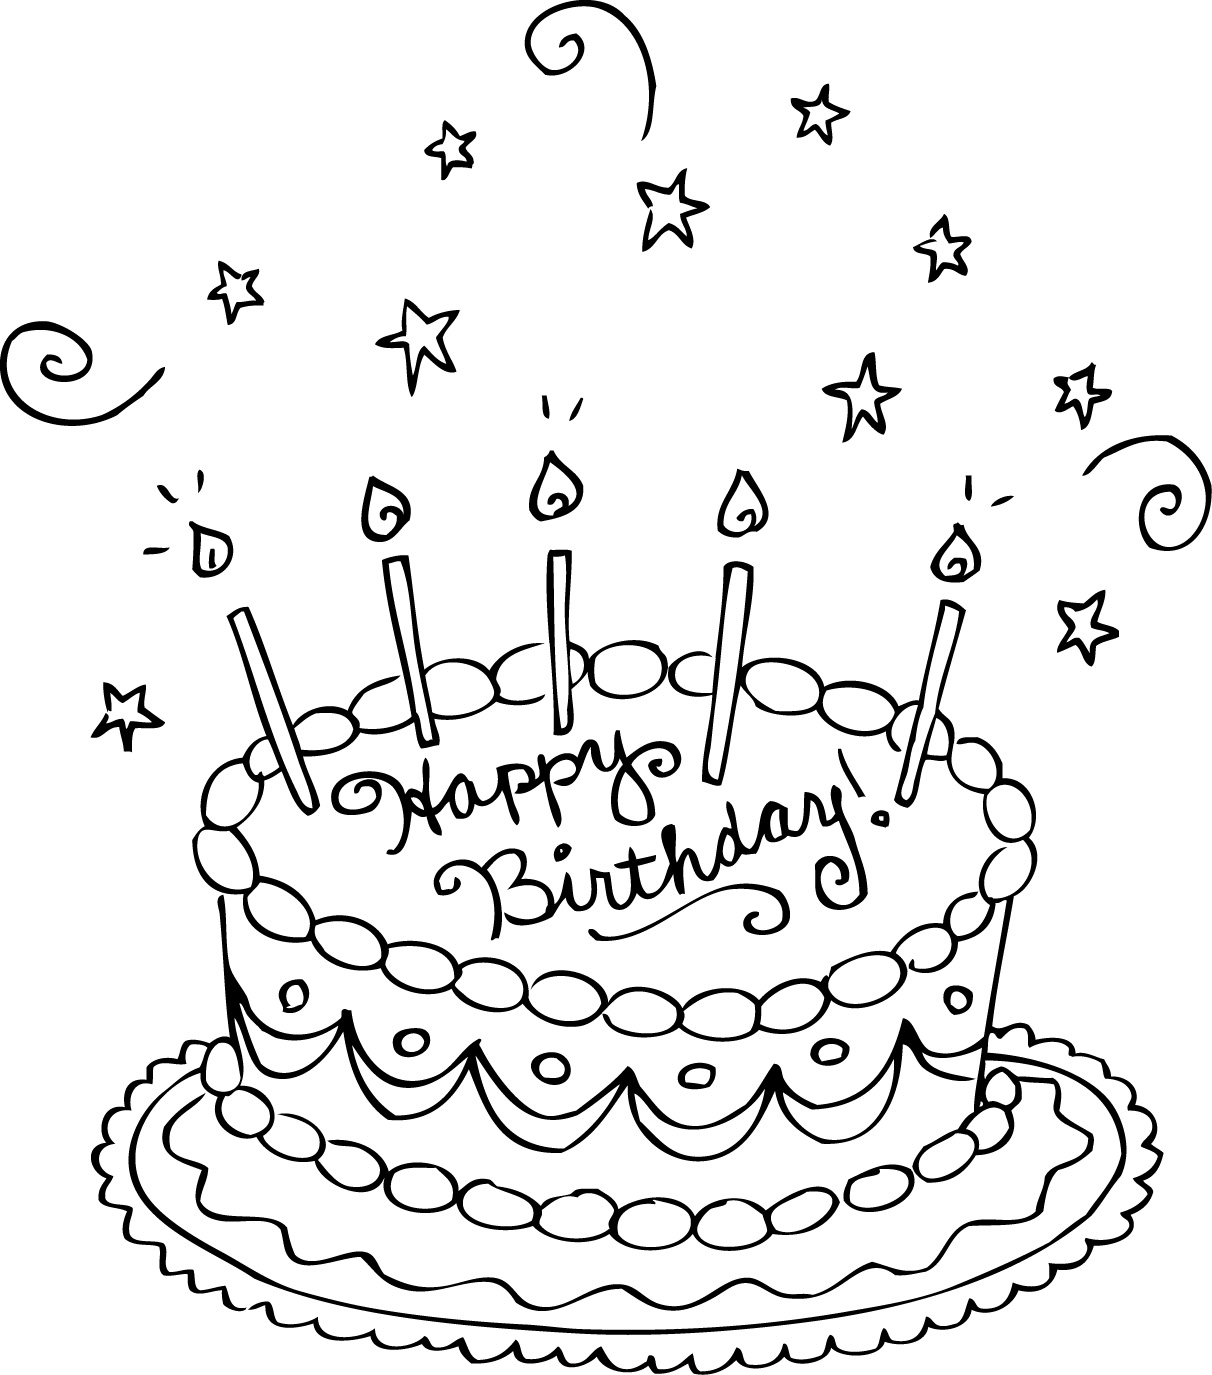 coloring pages birthday cake free printable birthday cake coloring pages for kids cake birthday coloring pages 1 1